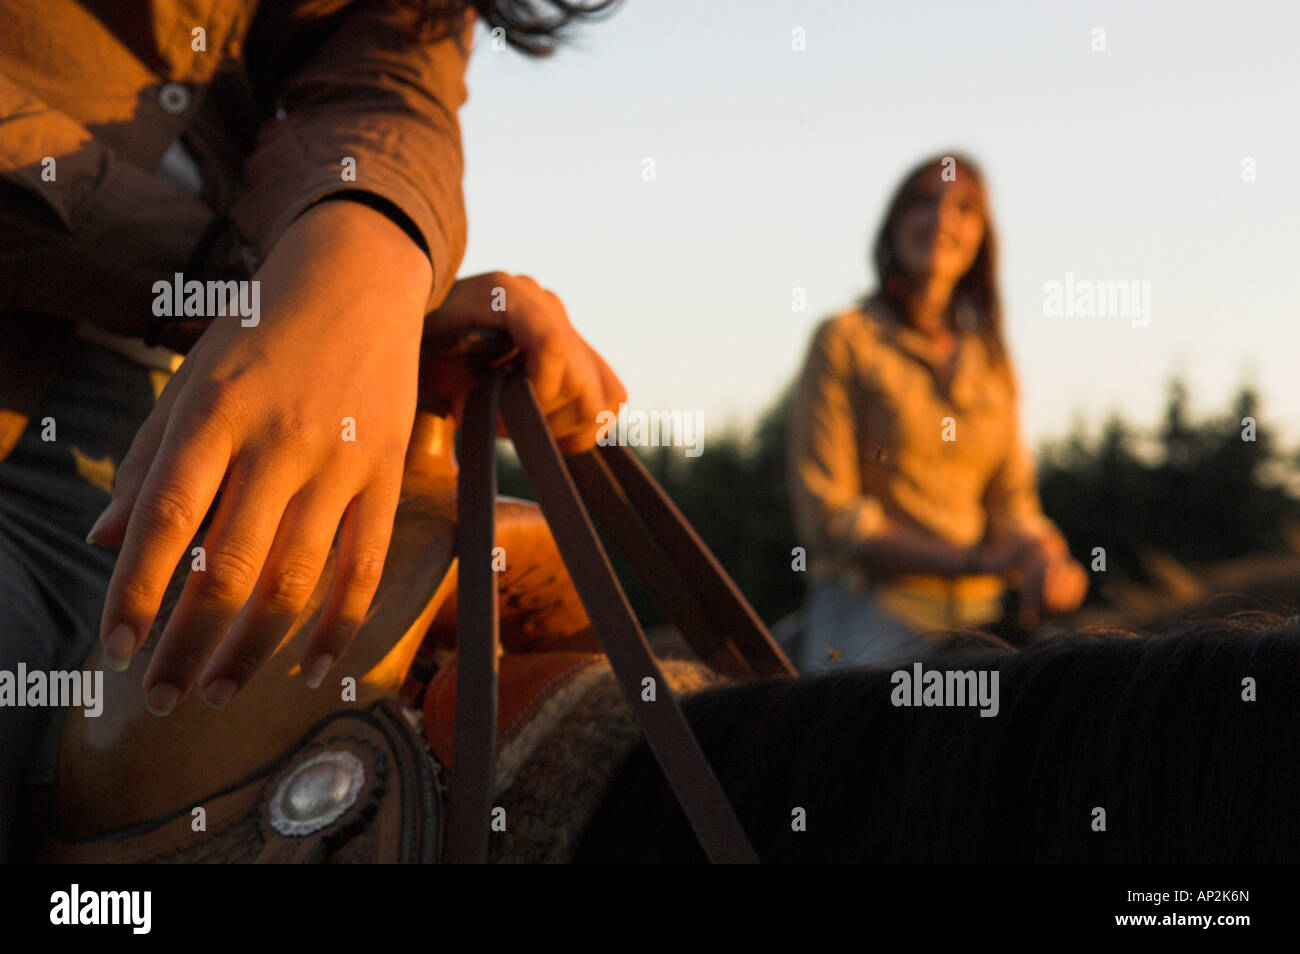 Close up of two women, horseriding, holding the reins, Muehlviertel, Upper Austria, Austria - Stock Image